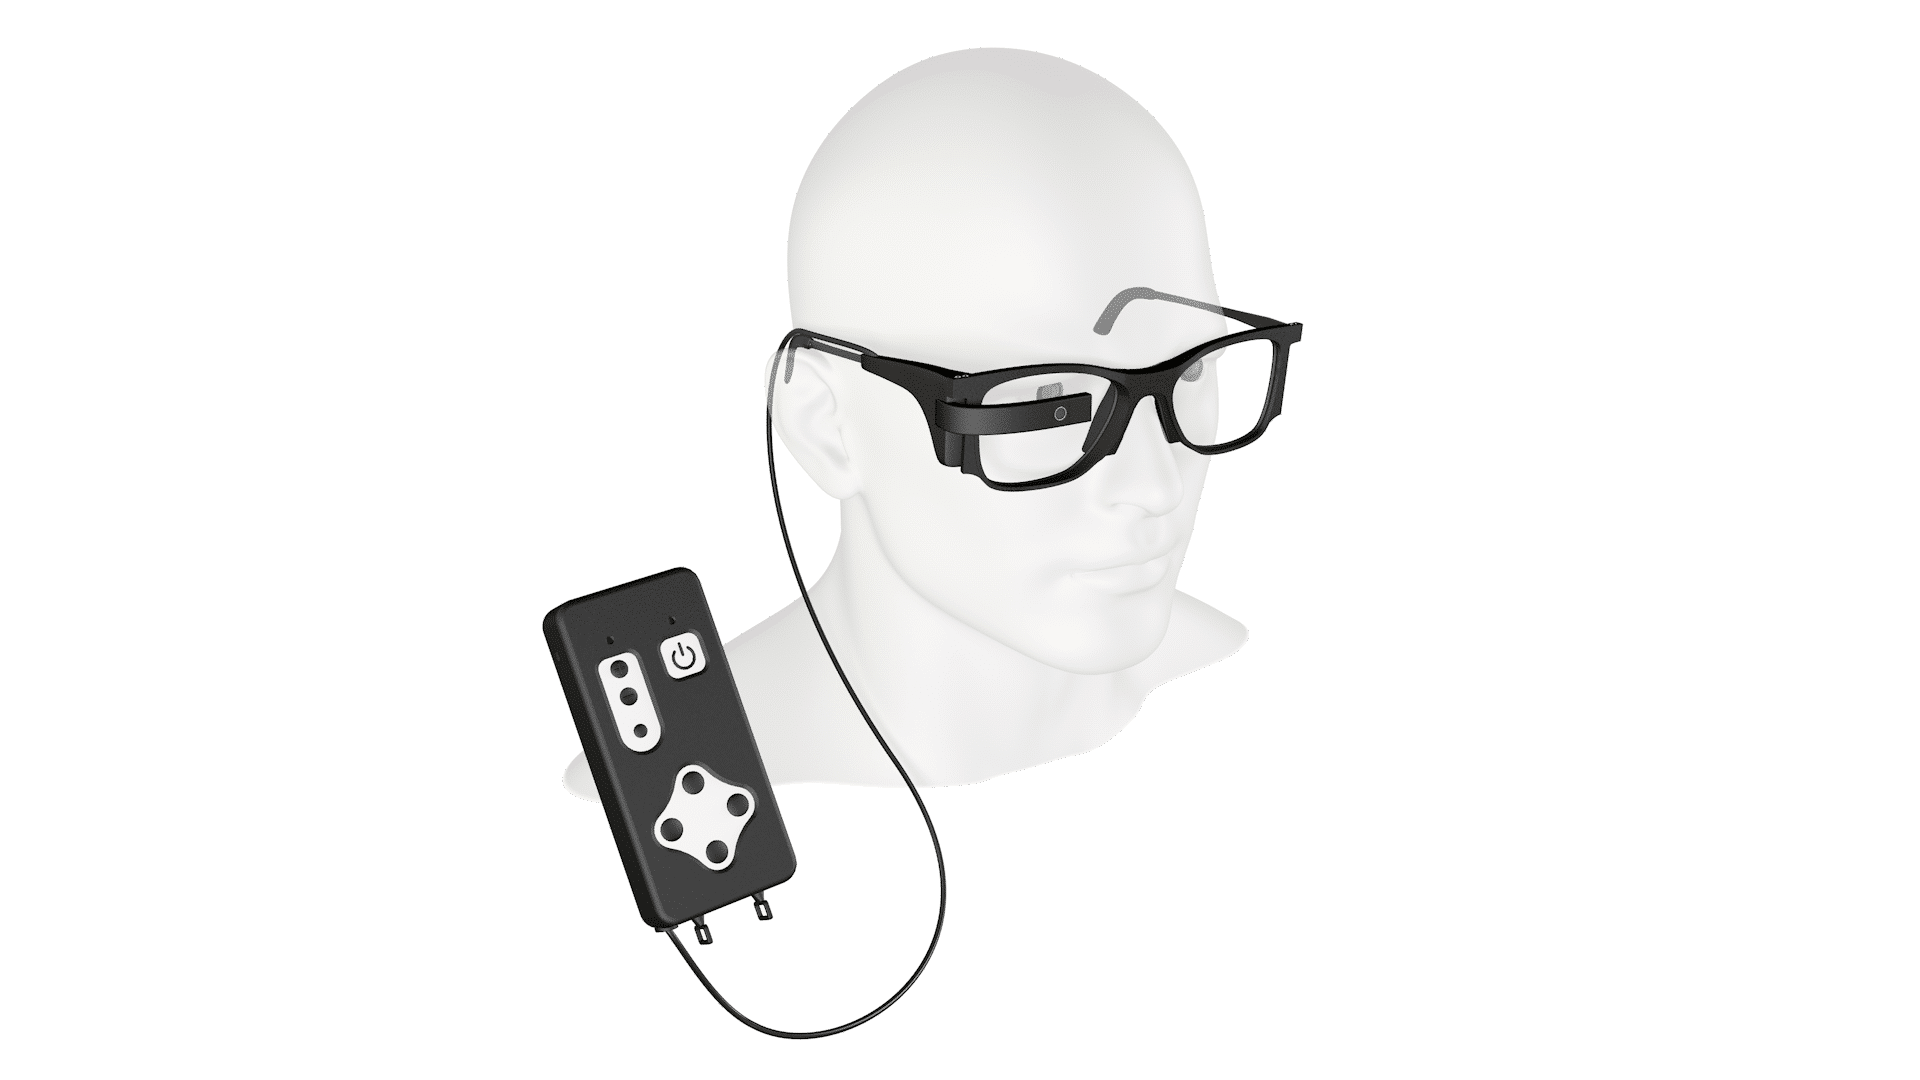 Pixium Vision – Bionic Vision for those who have lost their sight